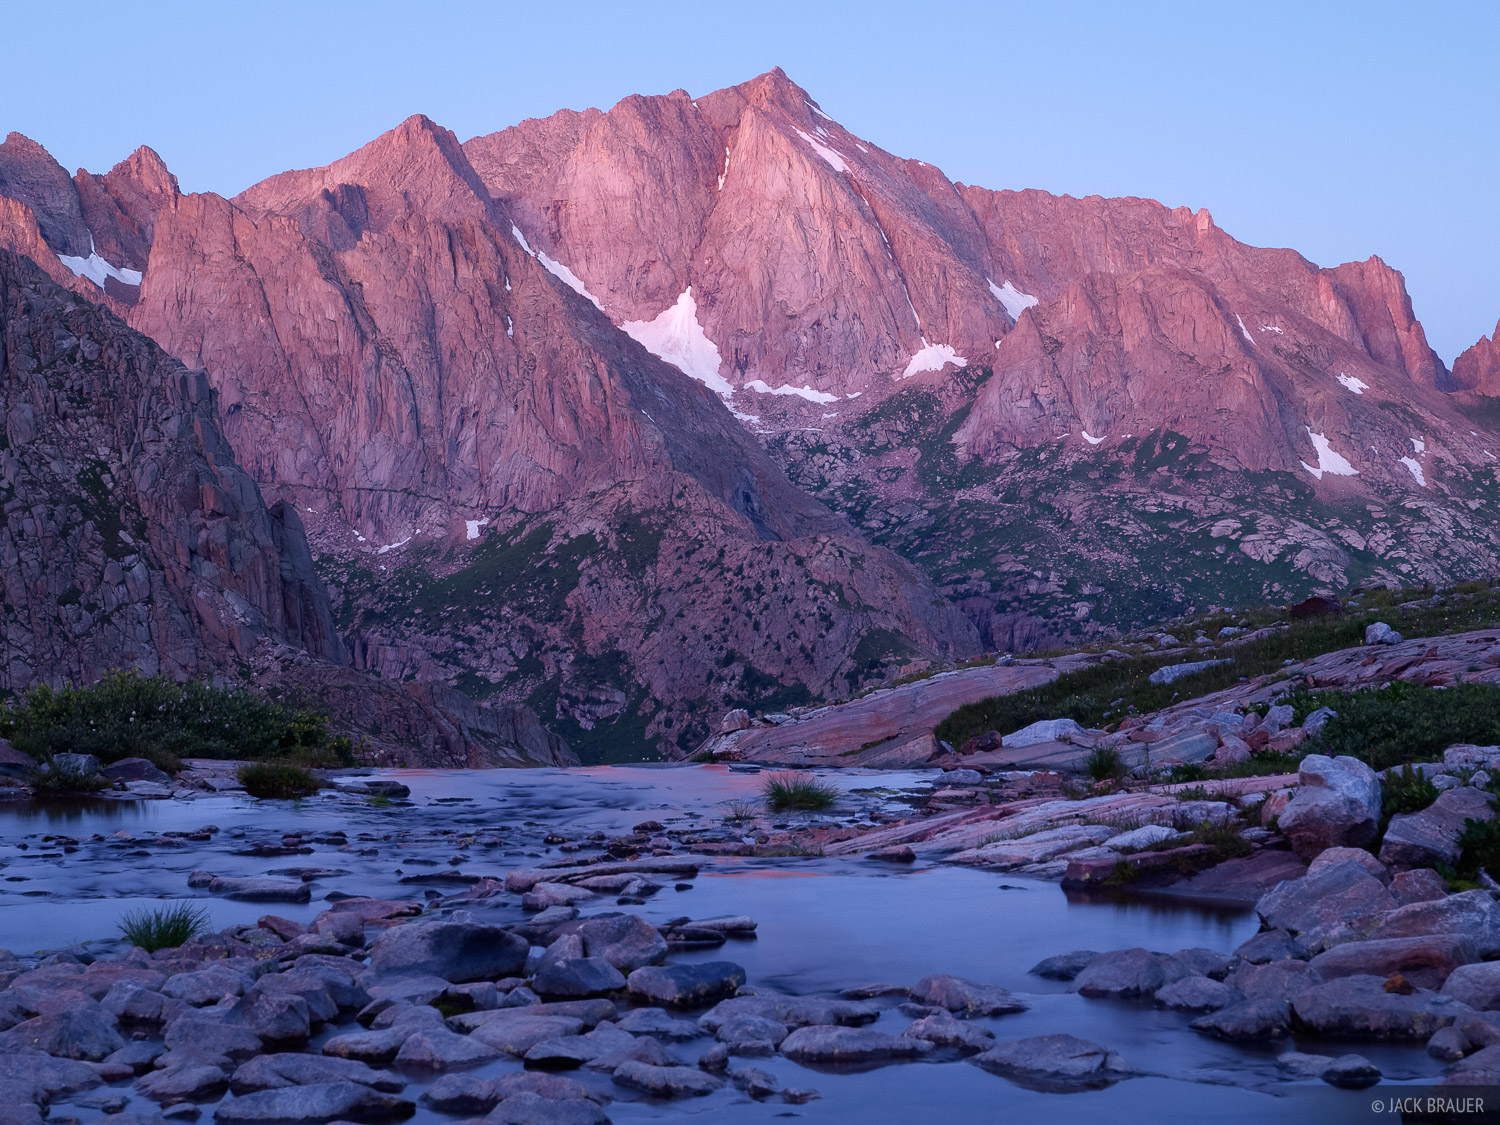 North Eolus, Weminuche Wilderness, Colorado, photo